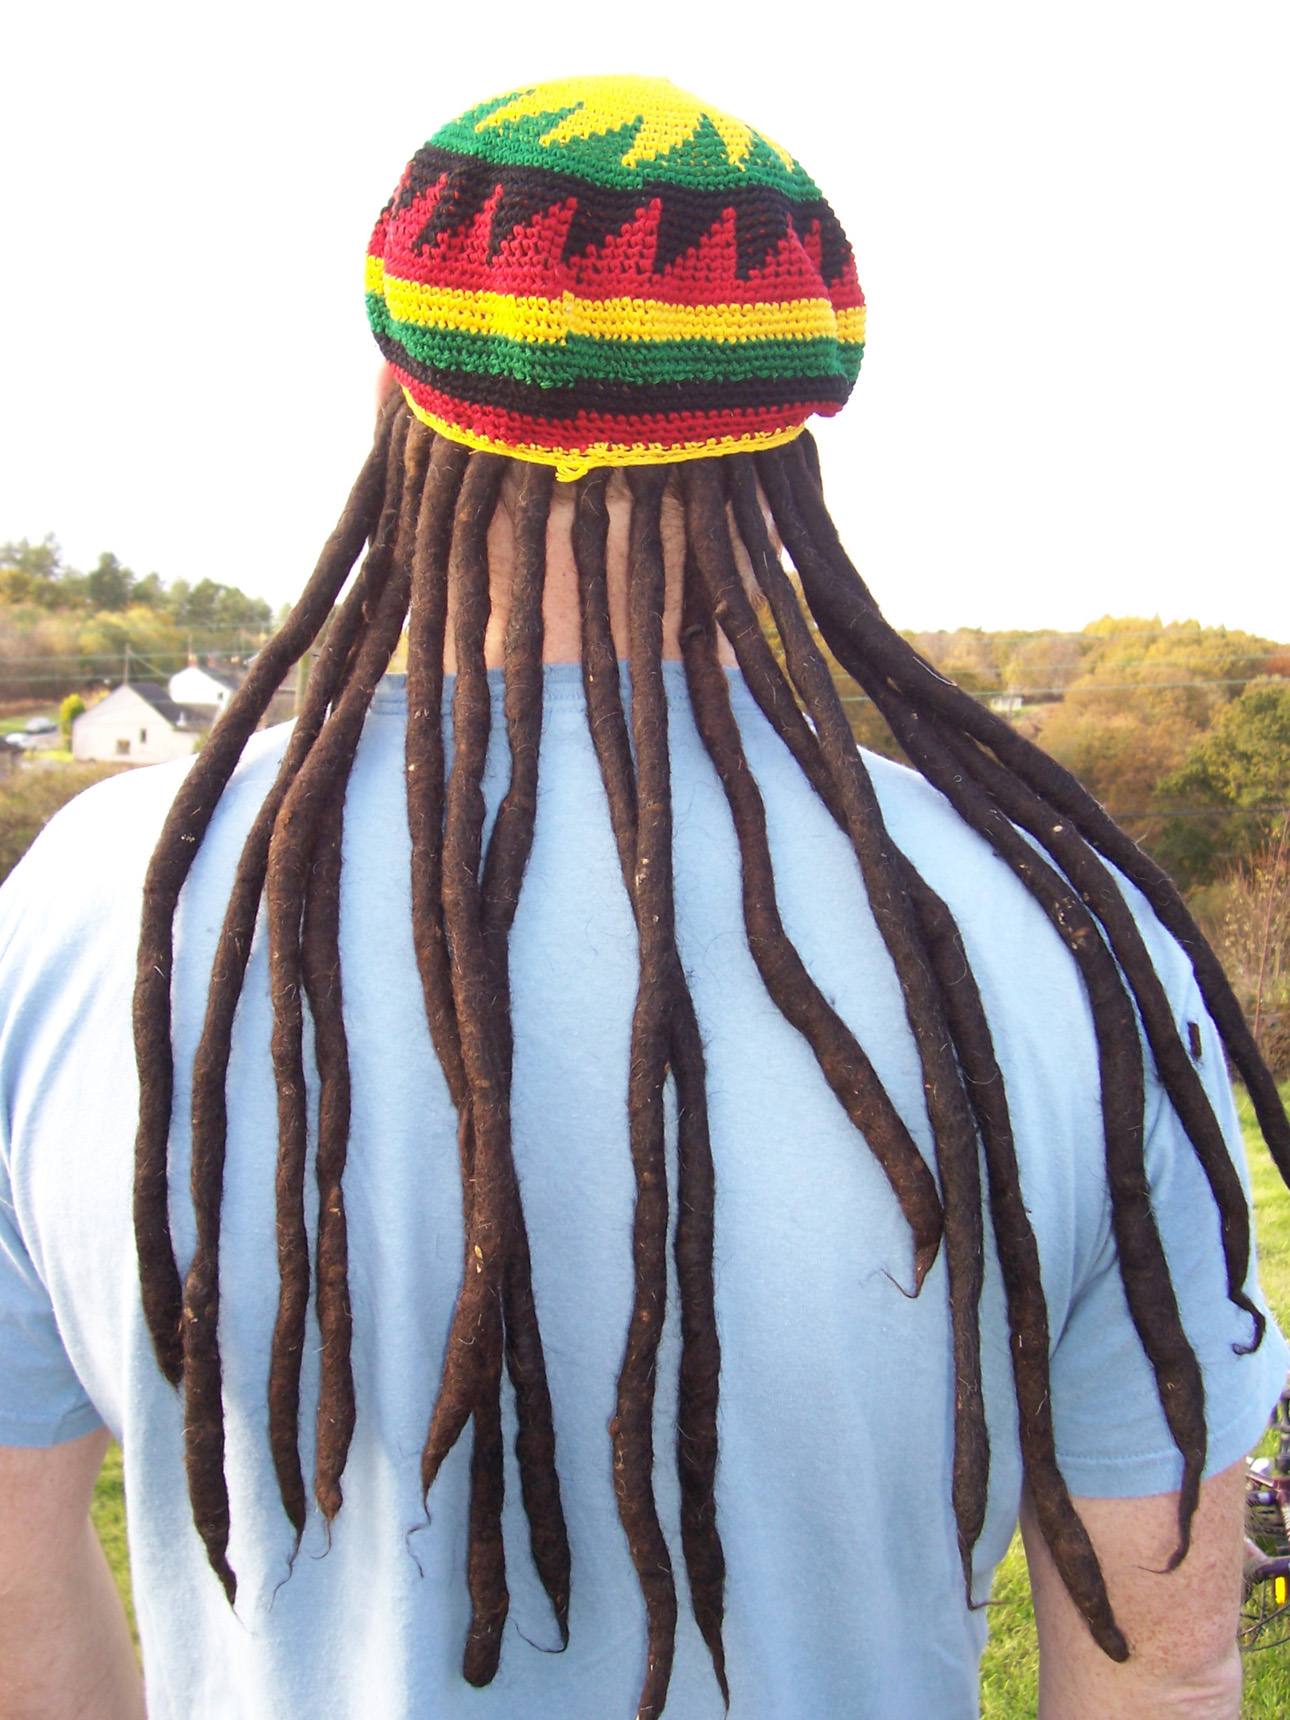 Knitting Pattern For Rasta Hat : KNITTING PATTERN RASTA HAT - FREE PATTERNS